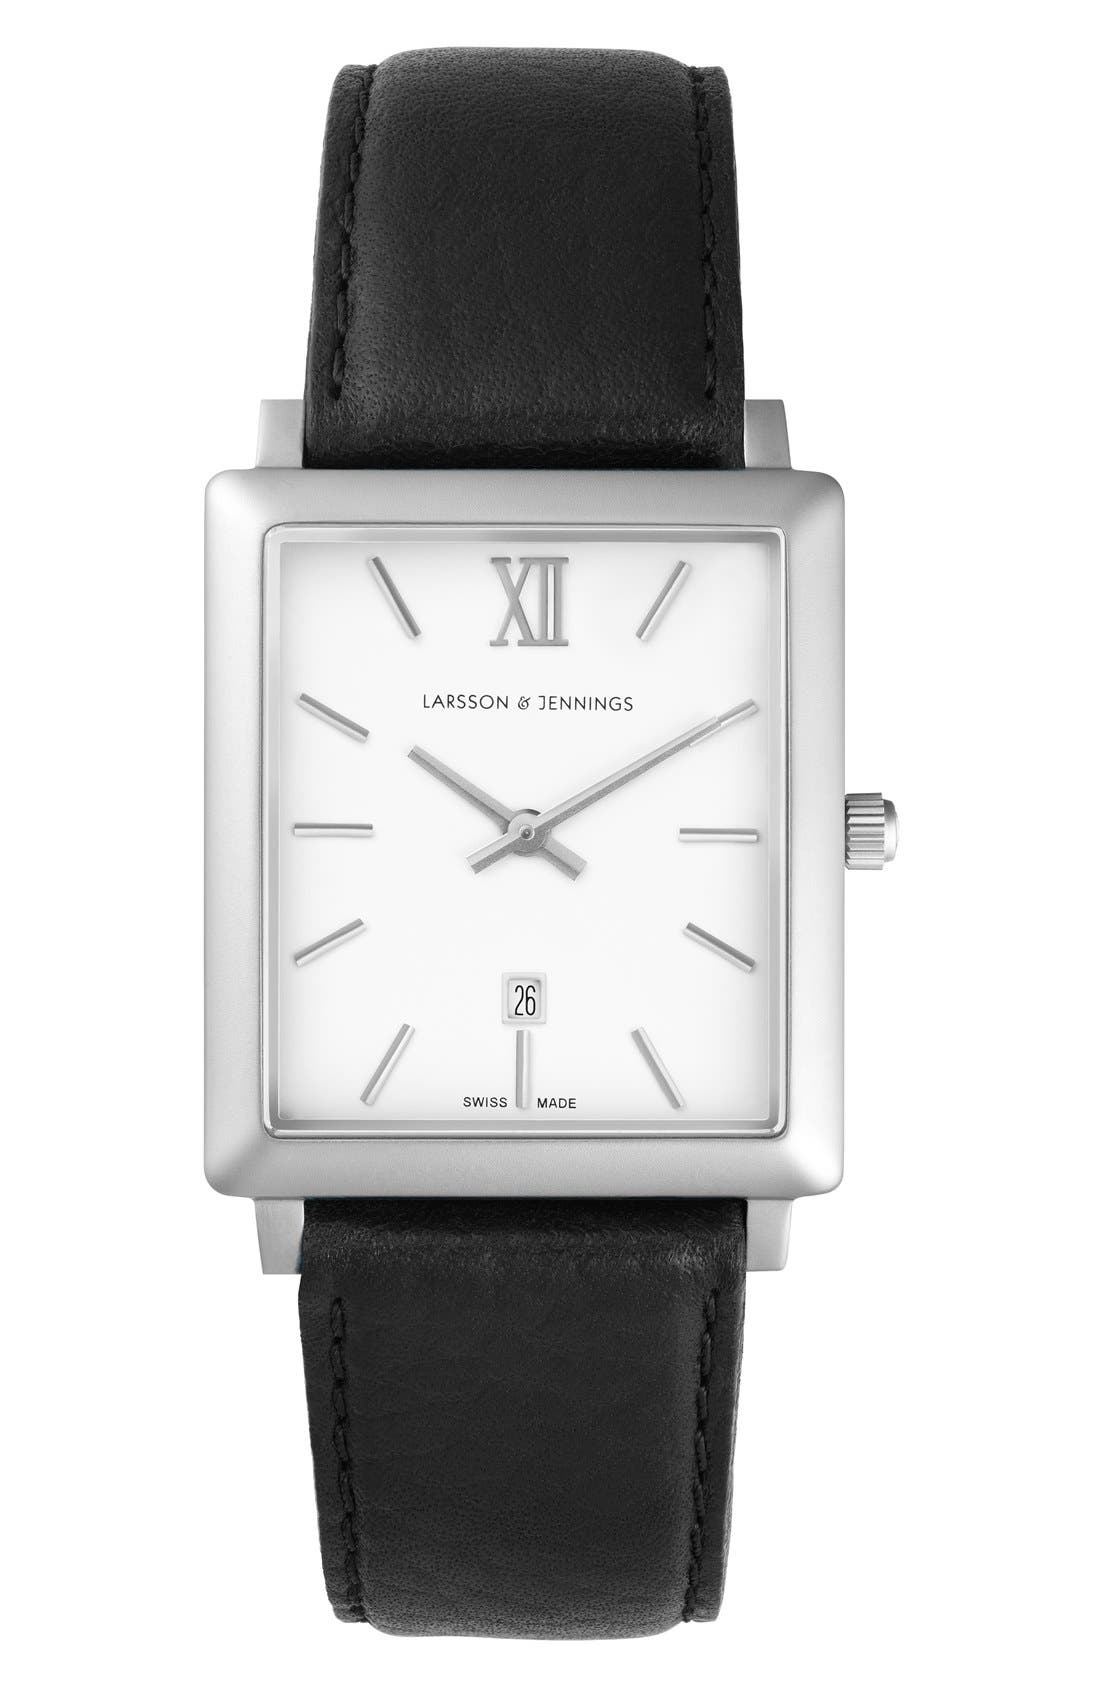 Main Image - Larsson & Jennings 'Norse' Rectangular Leather Strap Watch, 29mm x 40mm